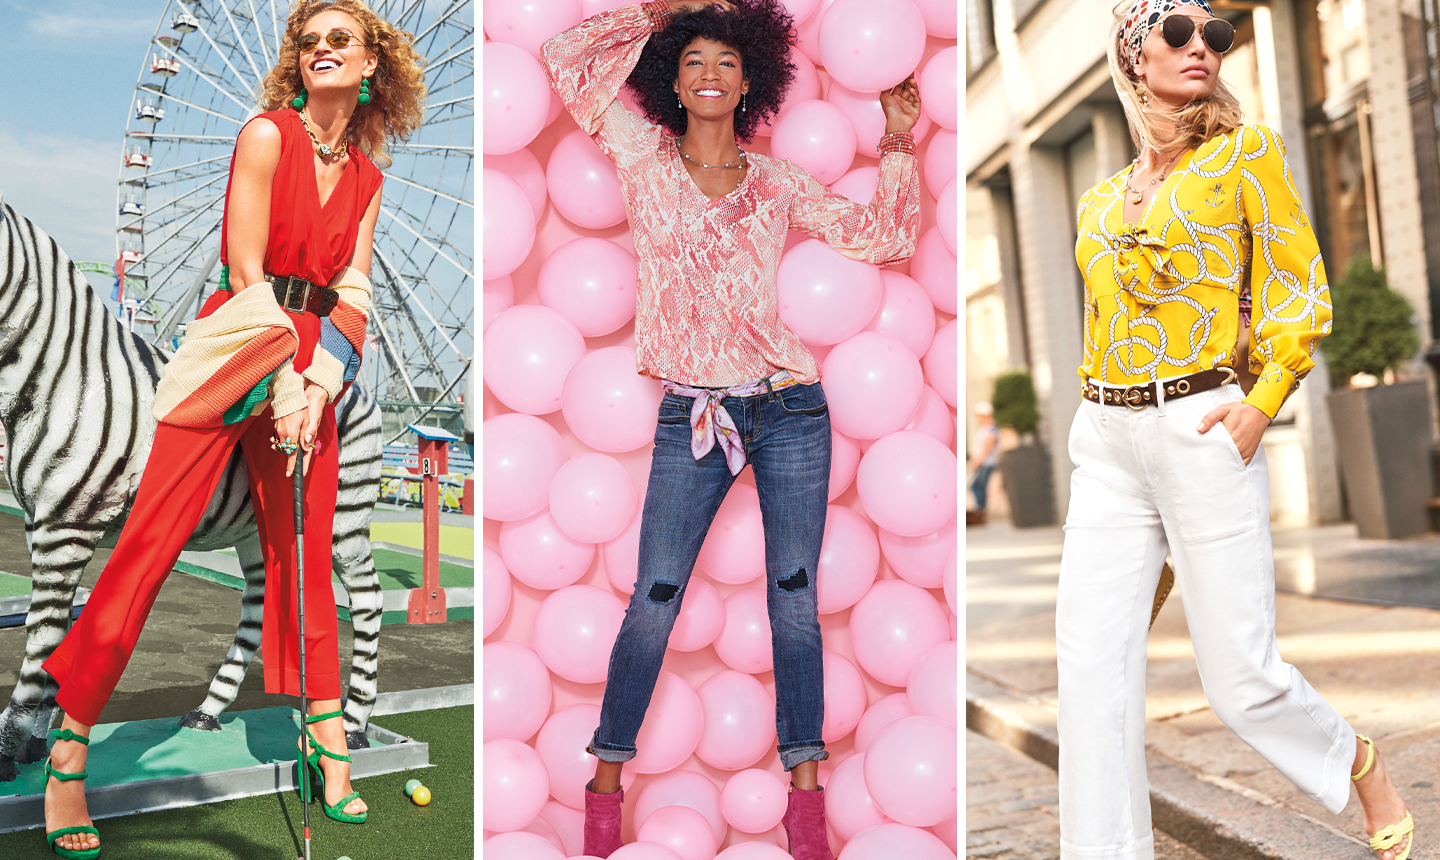 spring 8 fashion trends - Cabi Spring 8 Collection